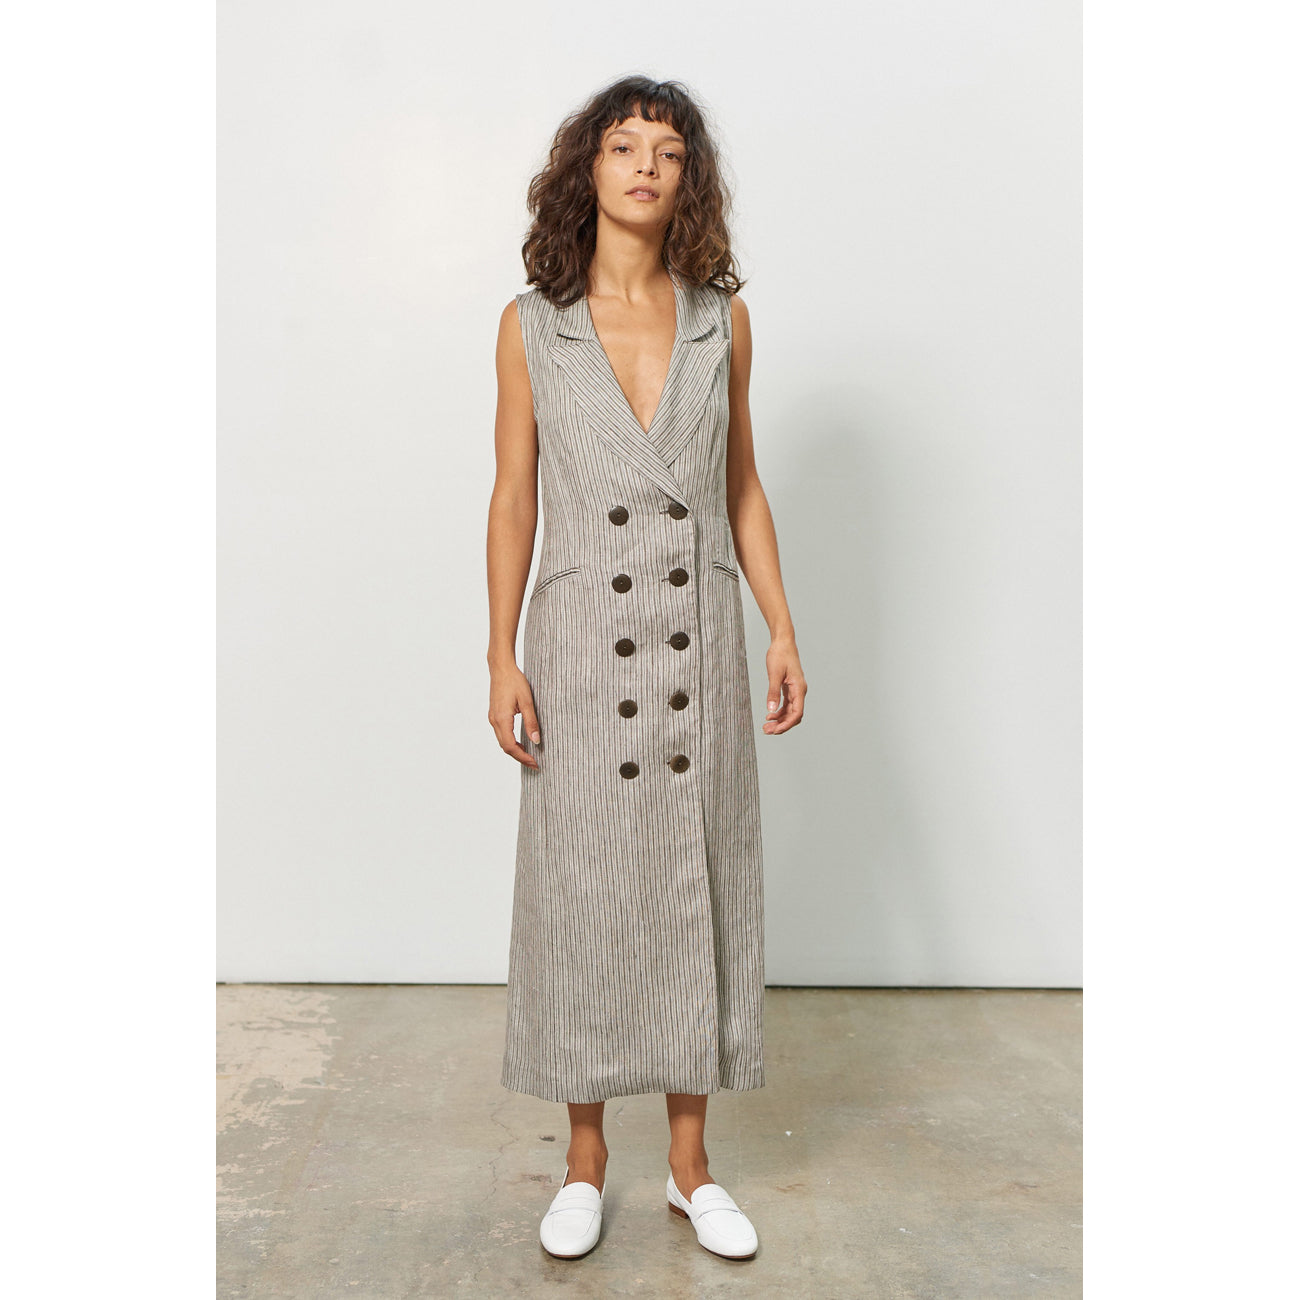 Mara Hoffman Tamar Dress